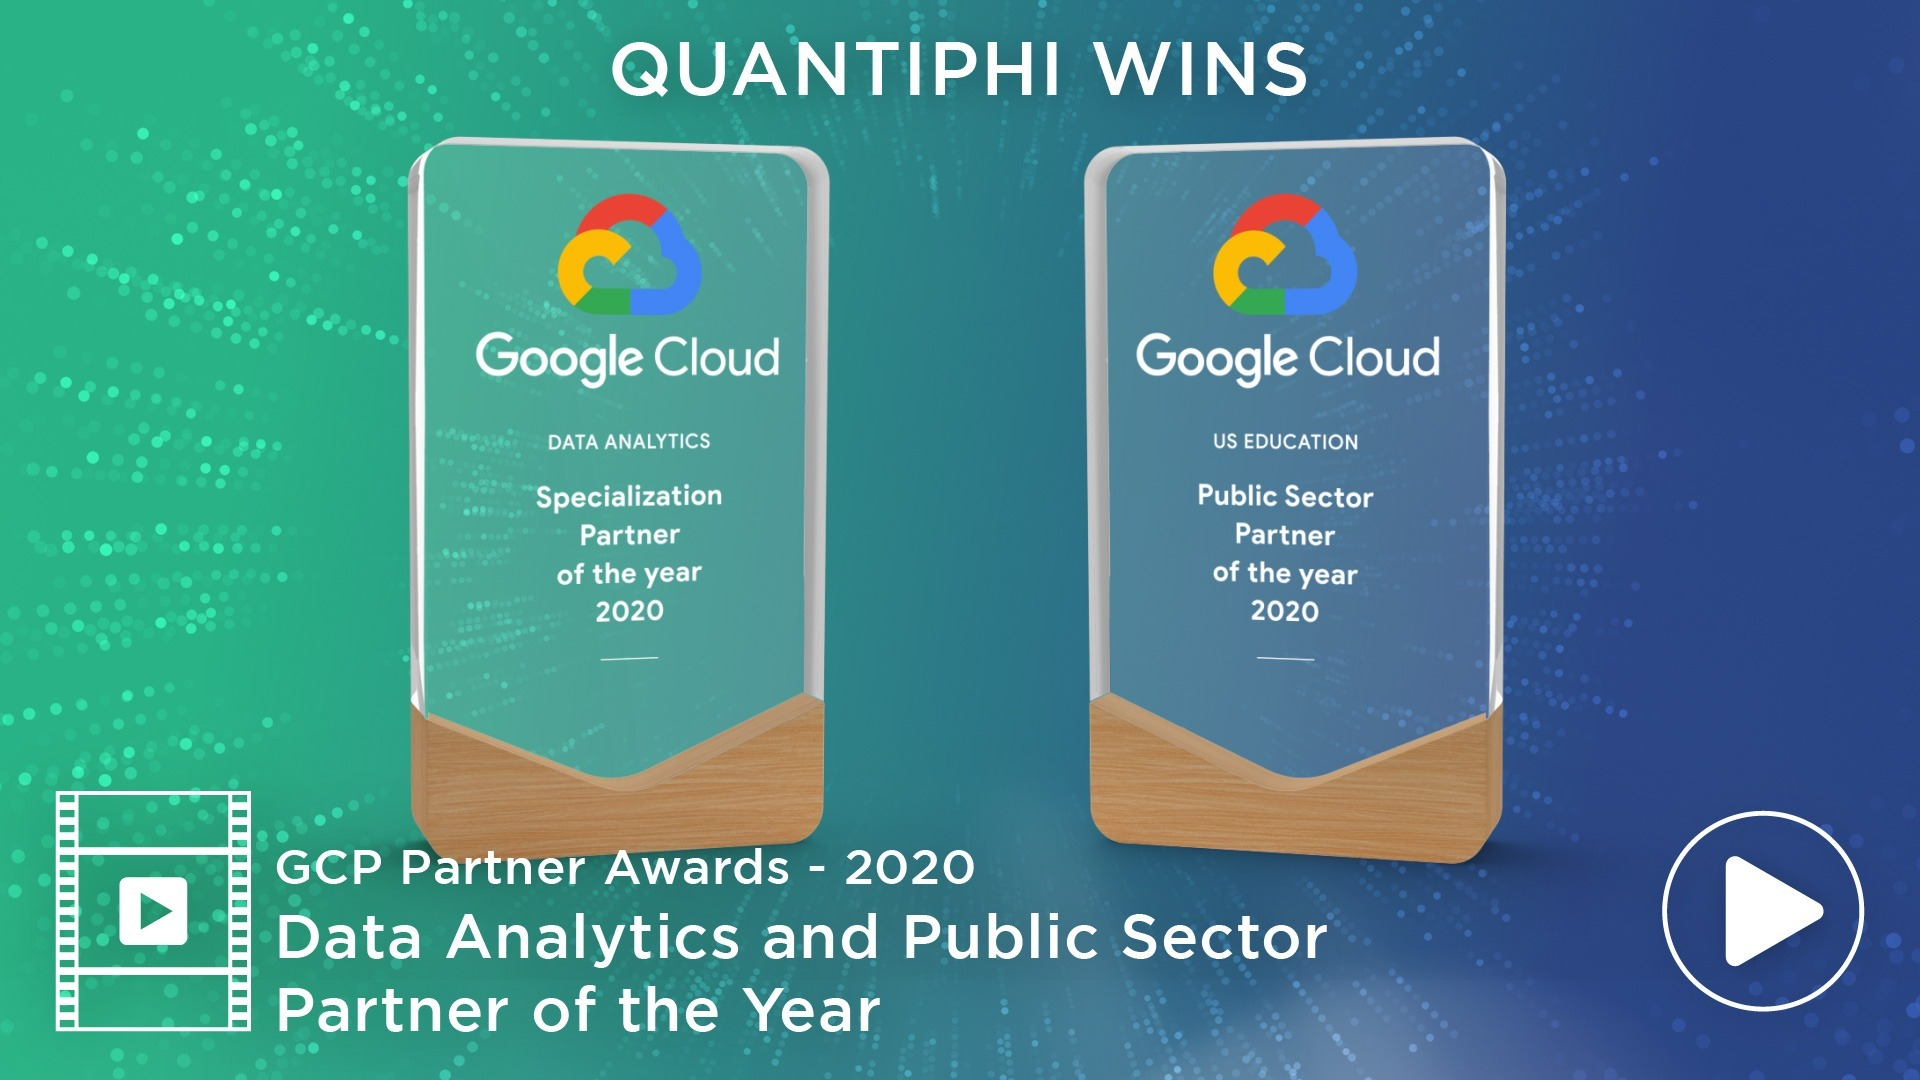 Partner of the Year Data Analytics Specialization and Public Sector – US Education | GCP Awards 2020